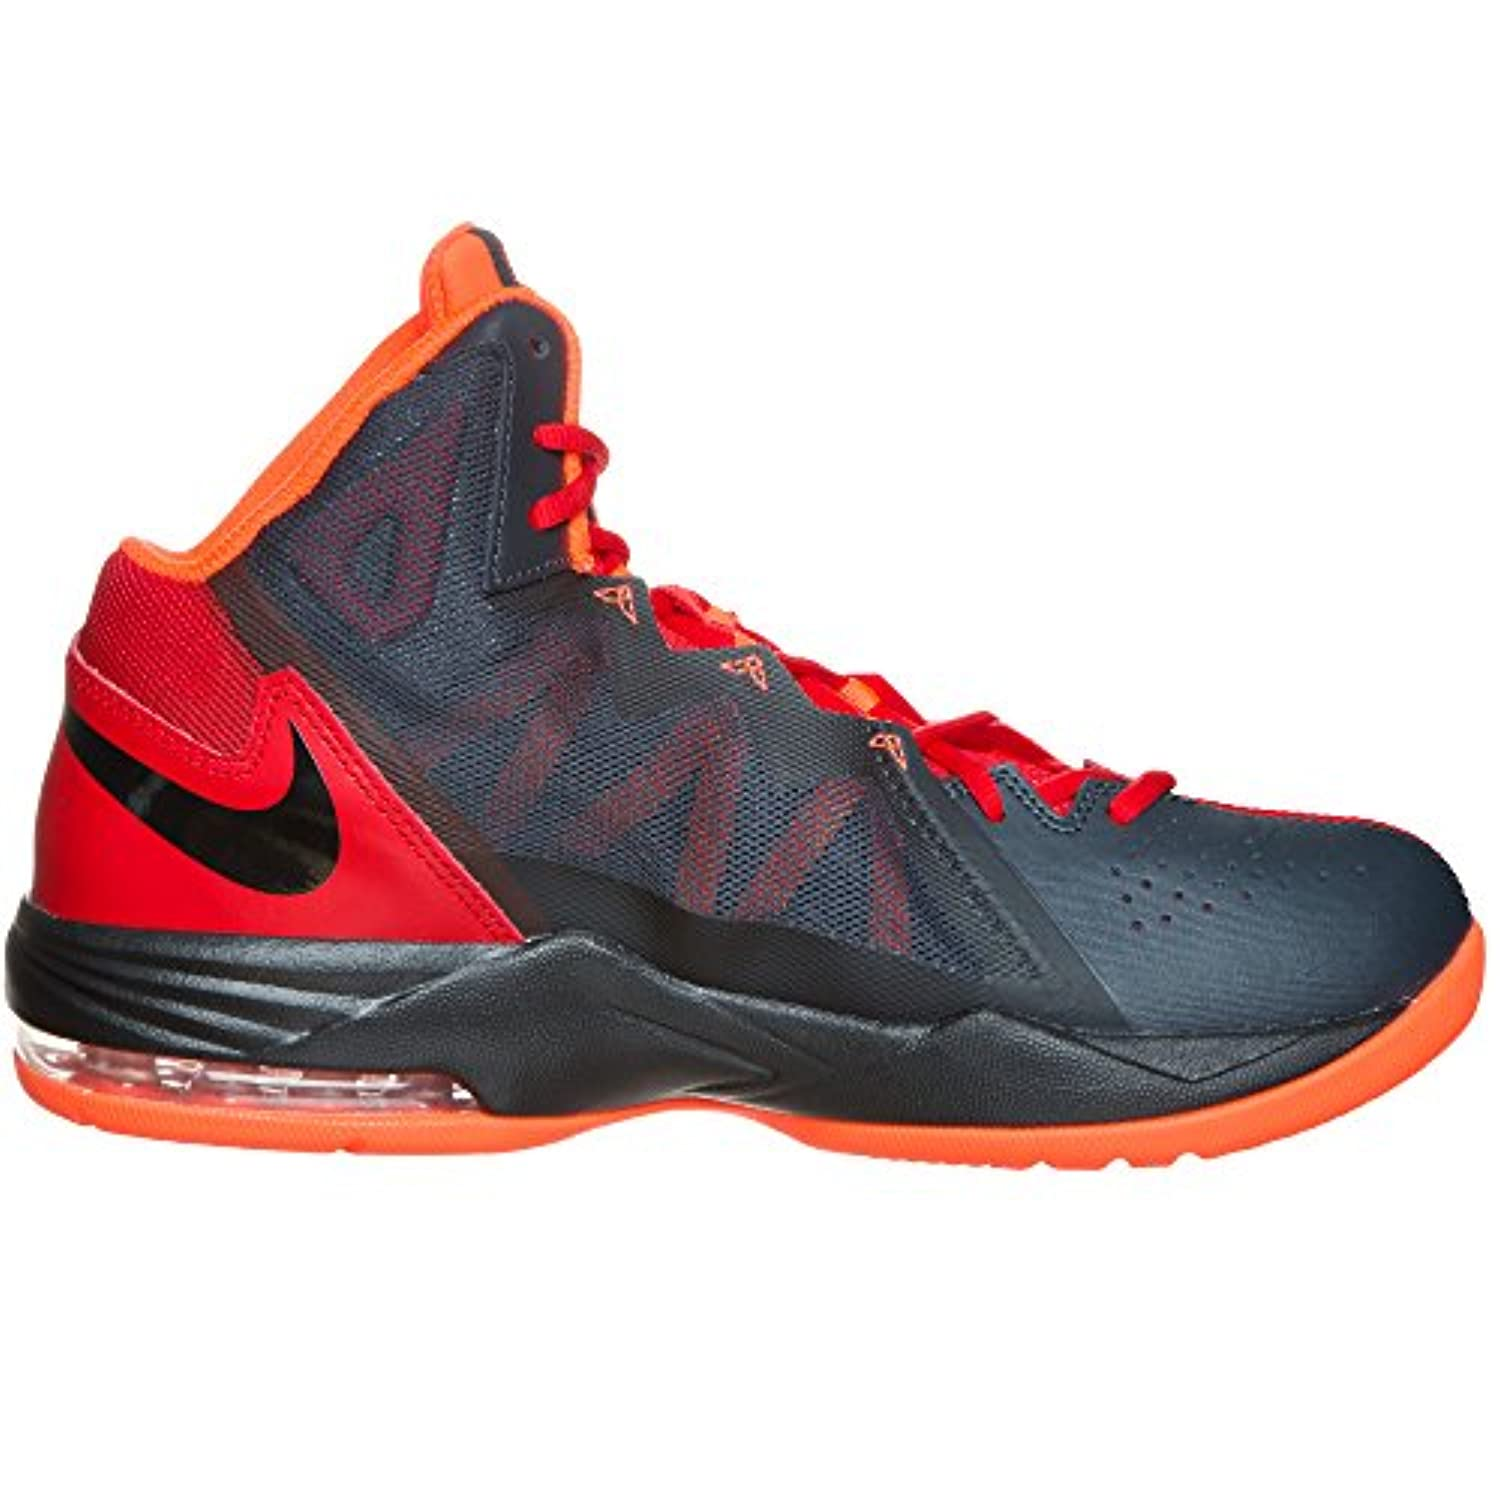 ... Nike Zoom Run the One Men's Basketball Shoe 653636 600 Size 10 ...